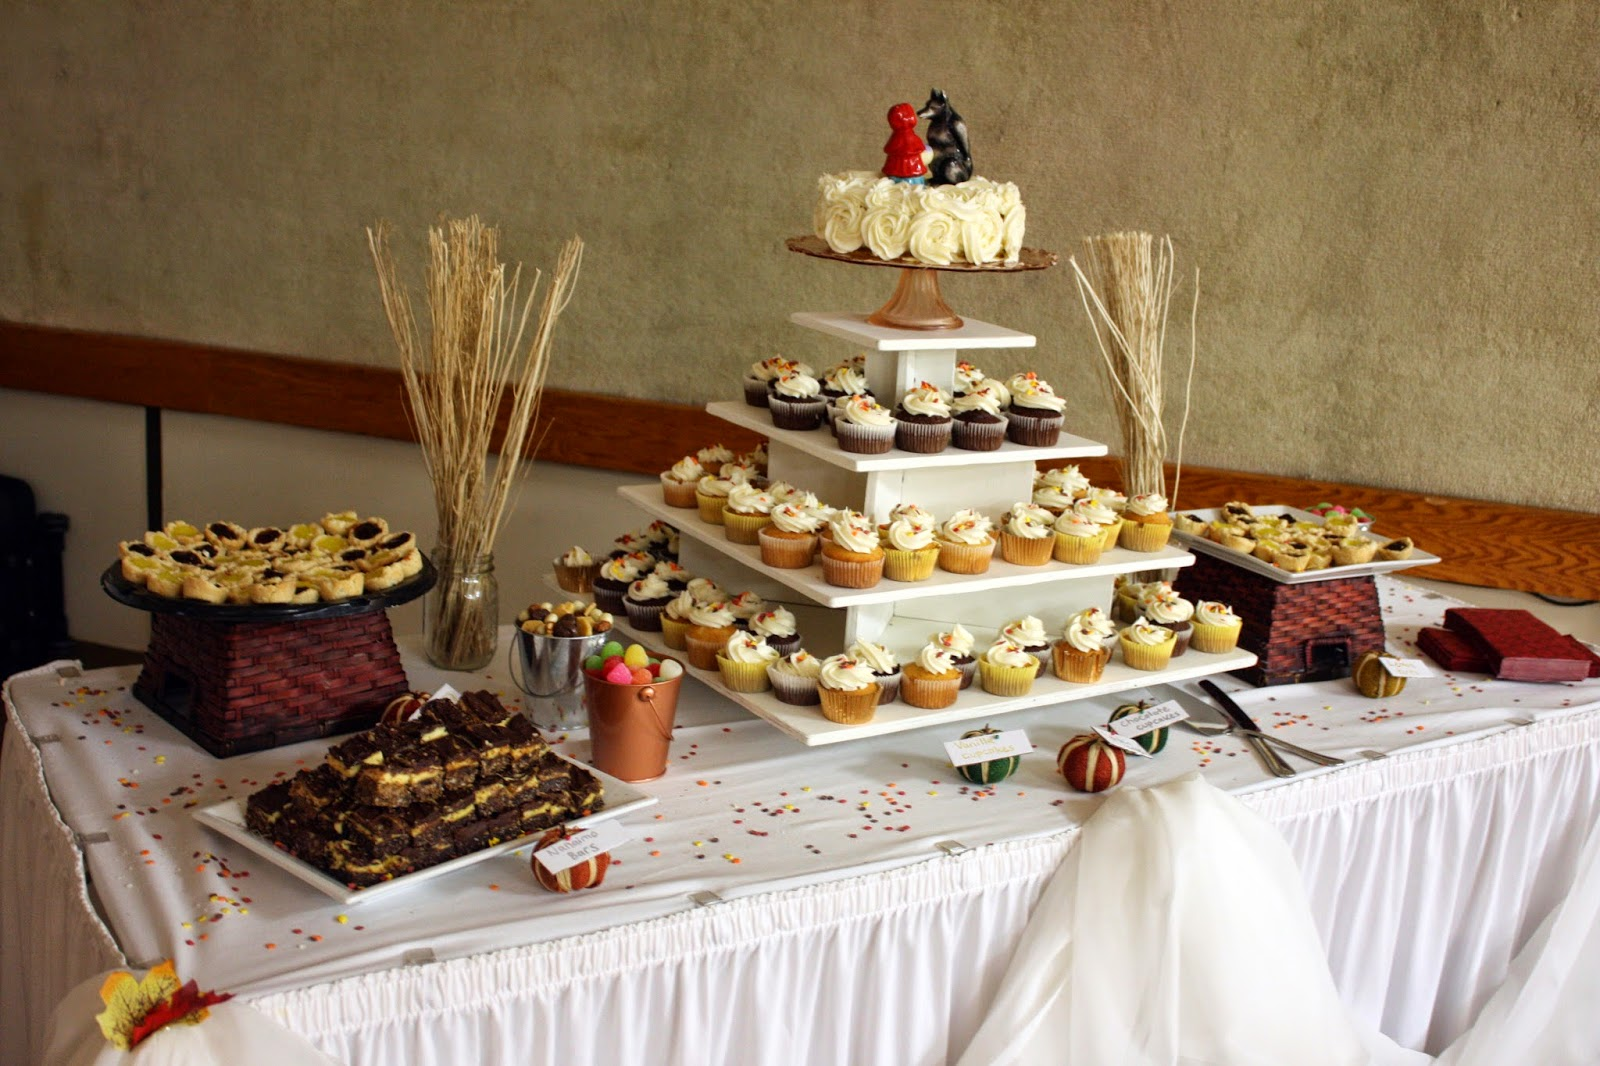 Harvest themed wedding dessert table